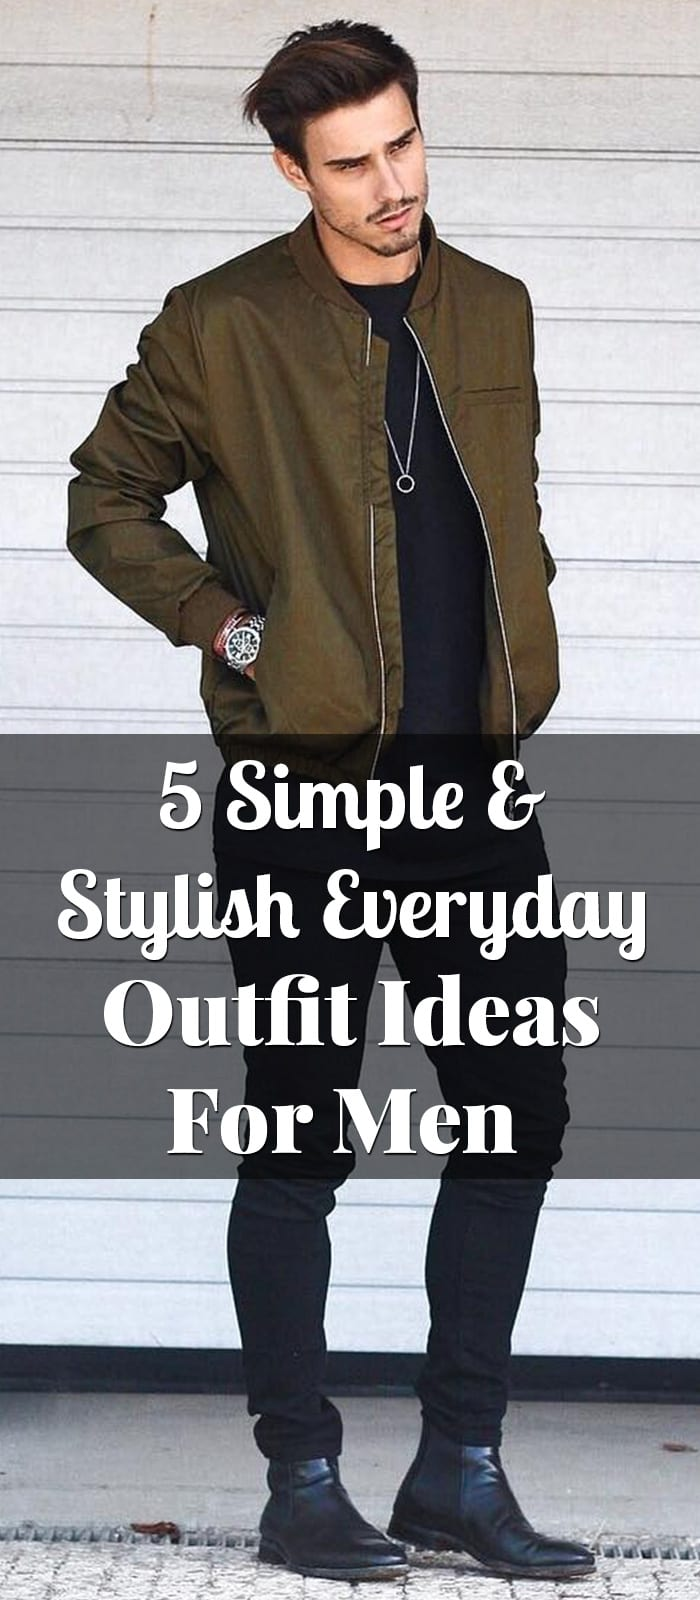 5 Simple & Stylish Everyday Outfit Ideas For Men